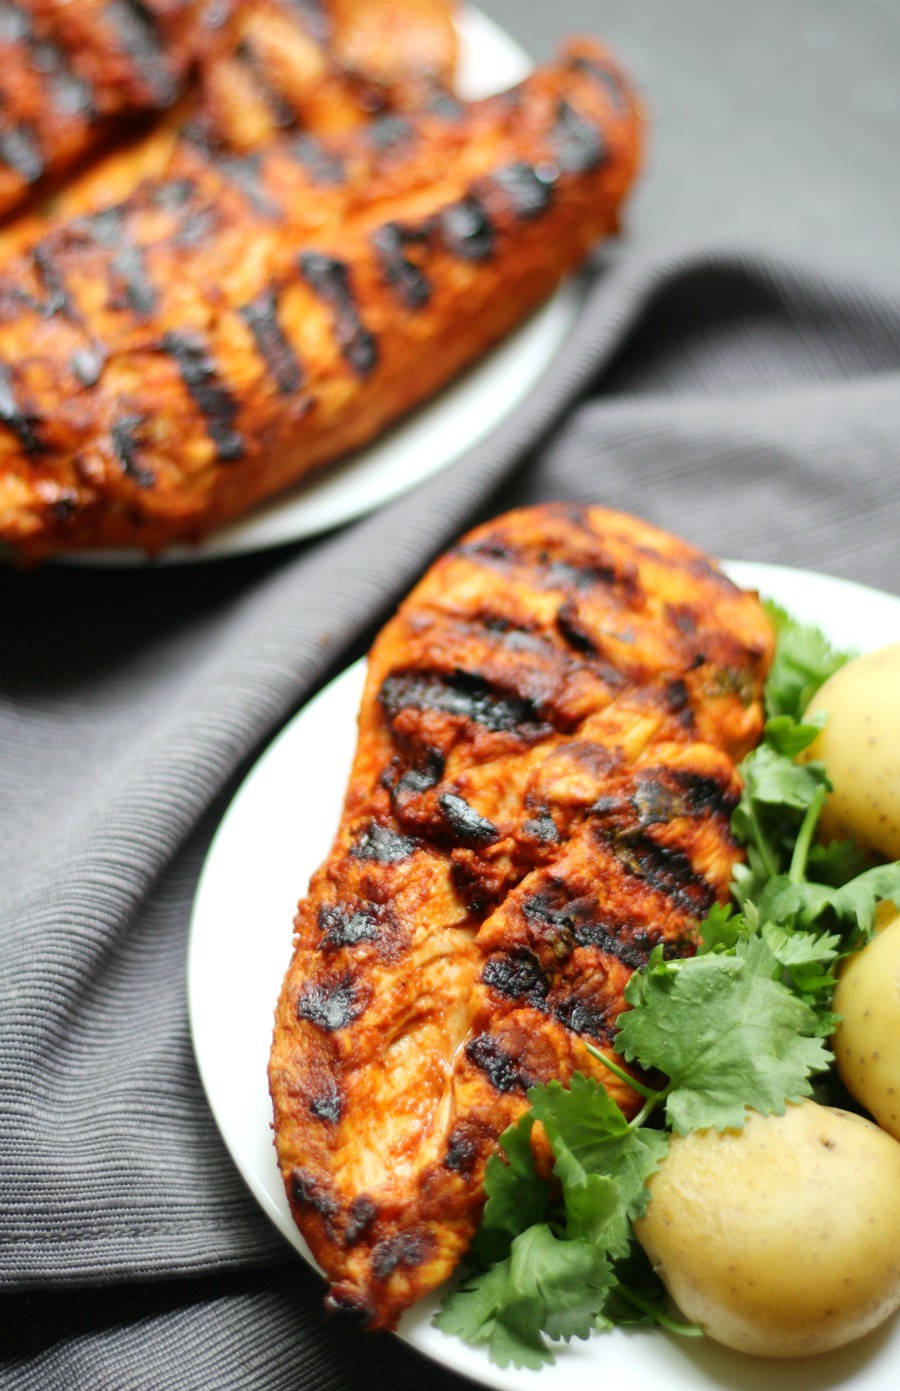 Grilled Peri-Peri Chicken (Gluten-Free, Paleo, Allergy-Free) | Strength and Sunshine @RebeccaGF666 A spicy North African recipe that will take your plain grilled chicken up a notch! Marinated in a spicy, zesty sauce, this Grilled Peri-Peri Chicken is loaded with flavor, gluten-free, paleo, top 8 allergy-free, and perfect for any cookout, bbq, or dinner!